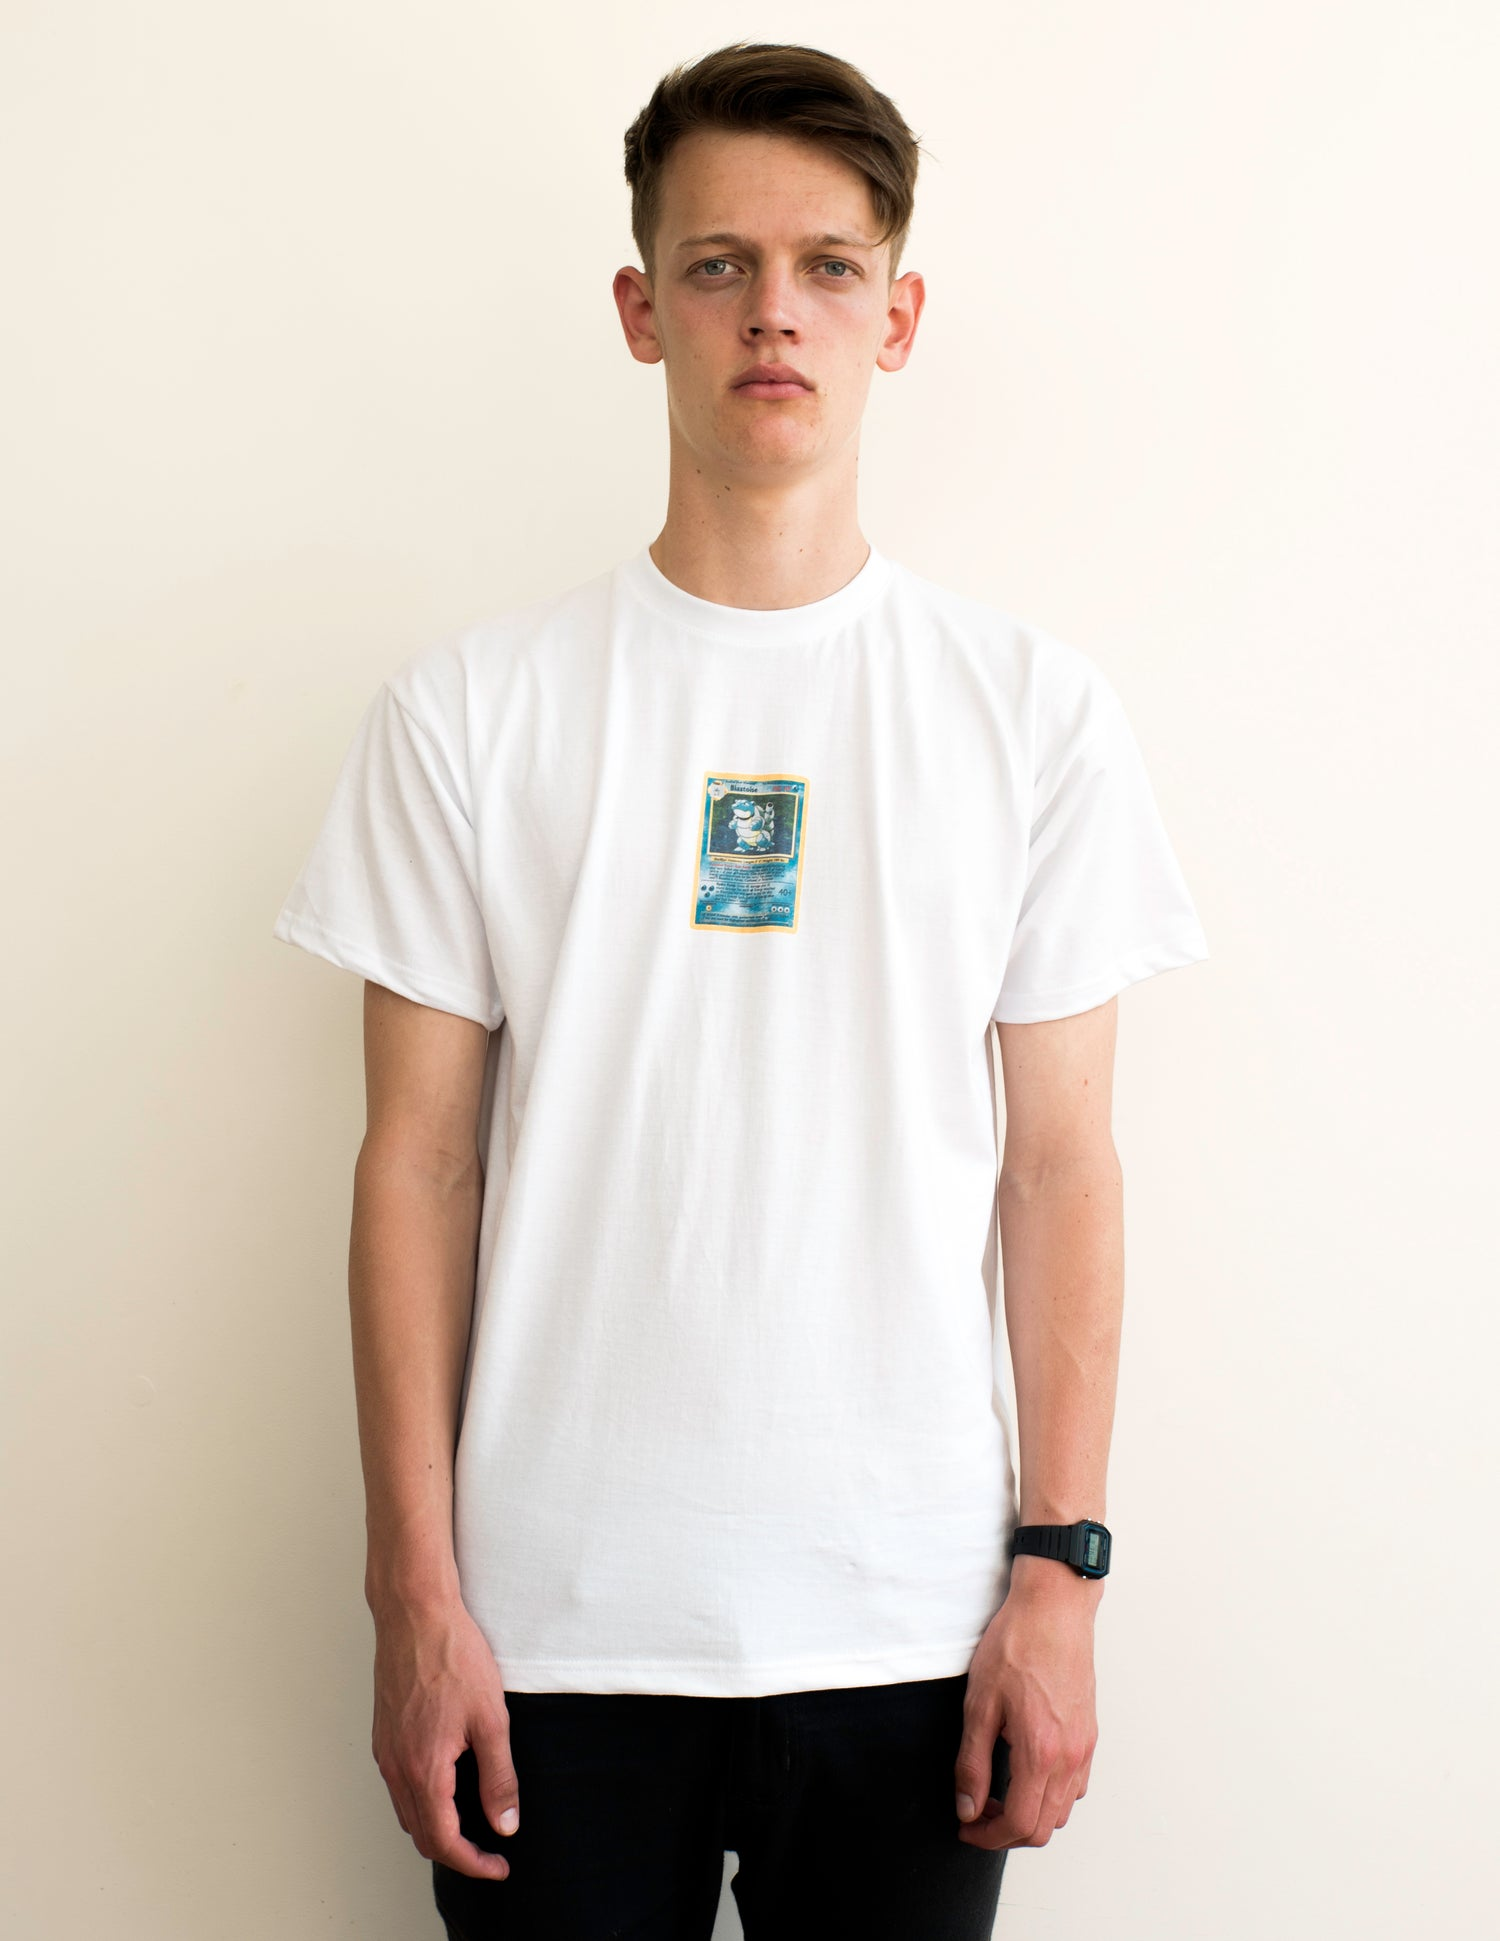 Image of Blastoise T-shirt